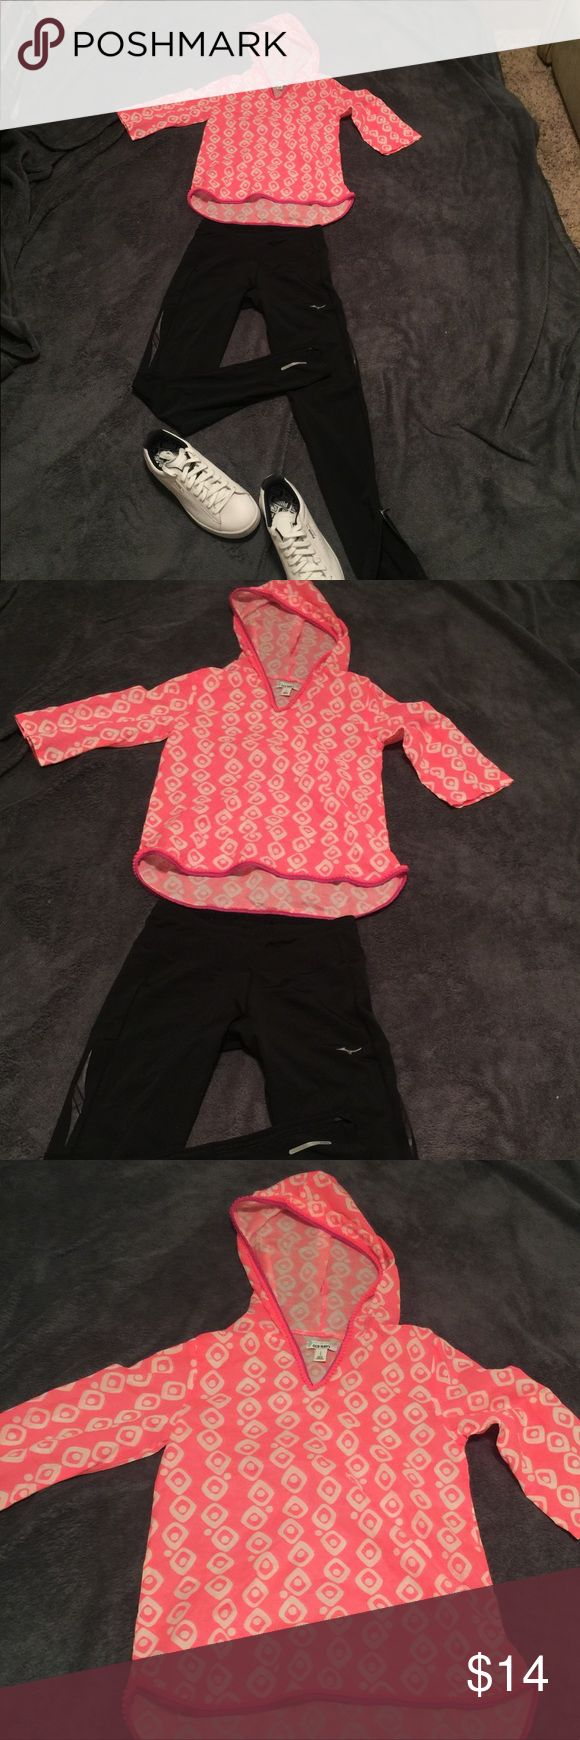 OLD NAVY hoodie shirt New without tag never worn Old Navy hoodie shirt size L Junior Old Navy Tops Sweatshirts & Hoodies